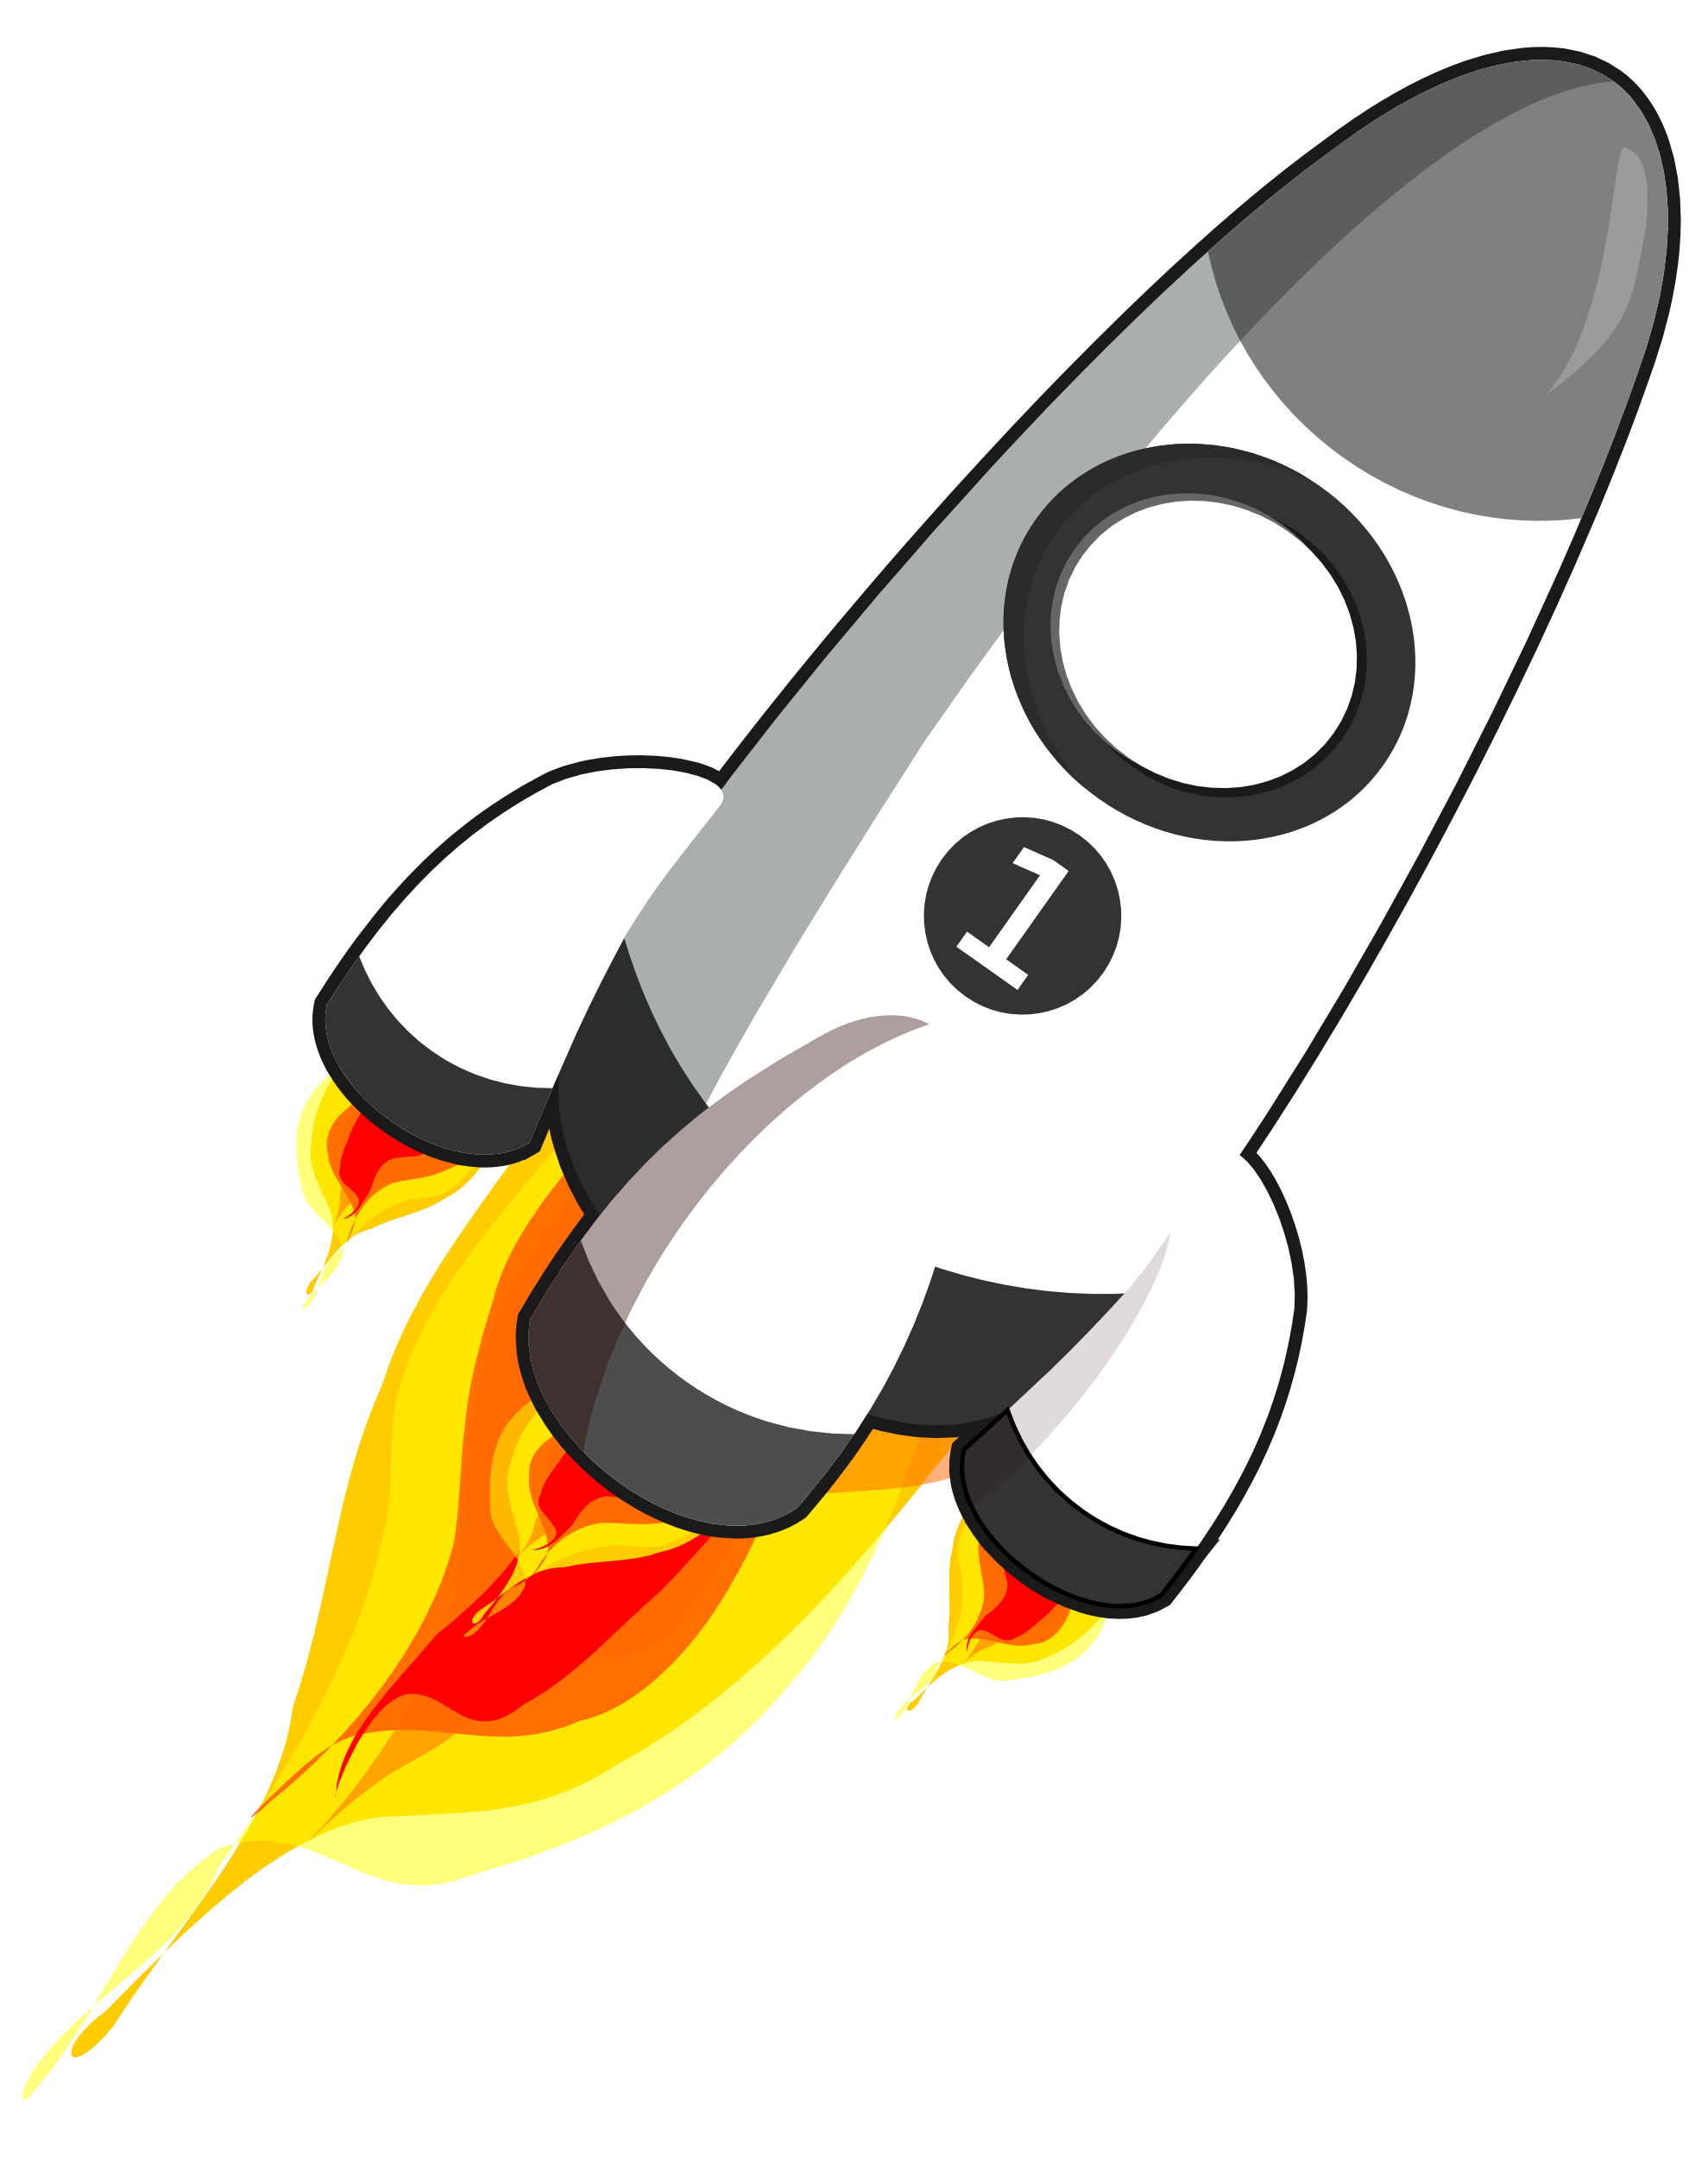 Rocket clipart transparent background #3